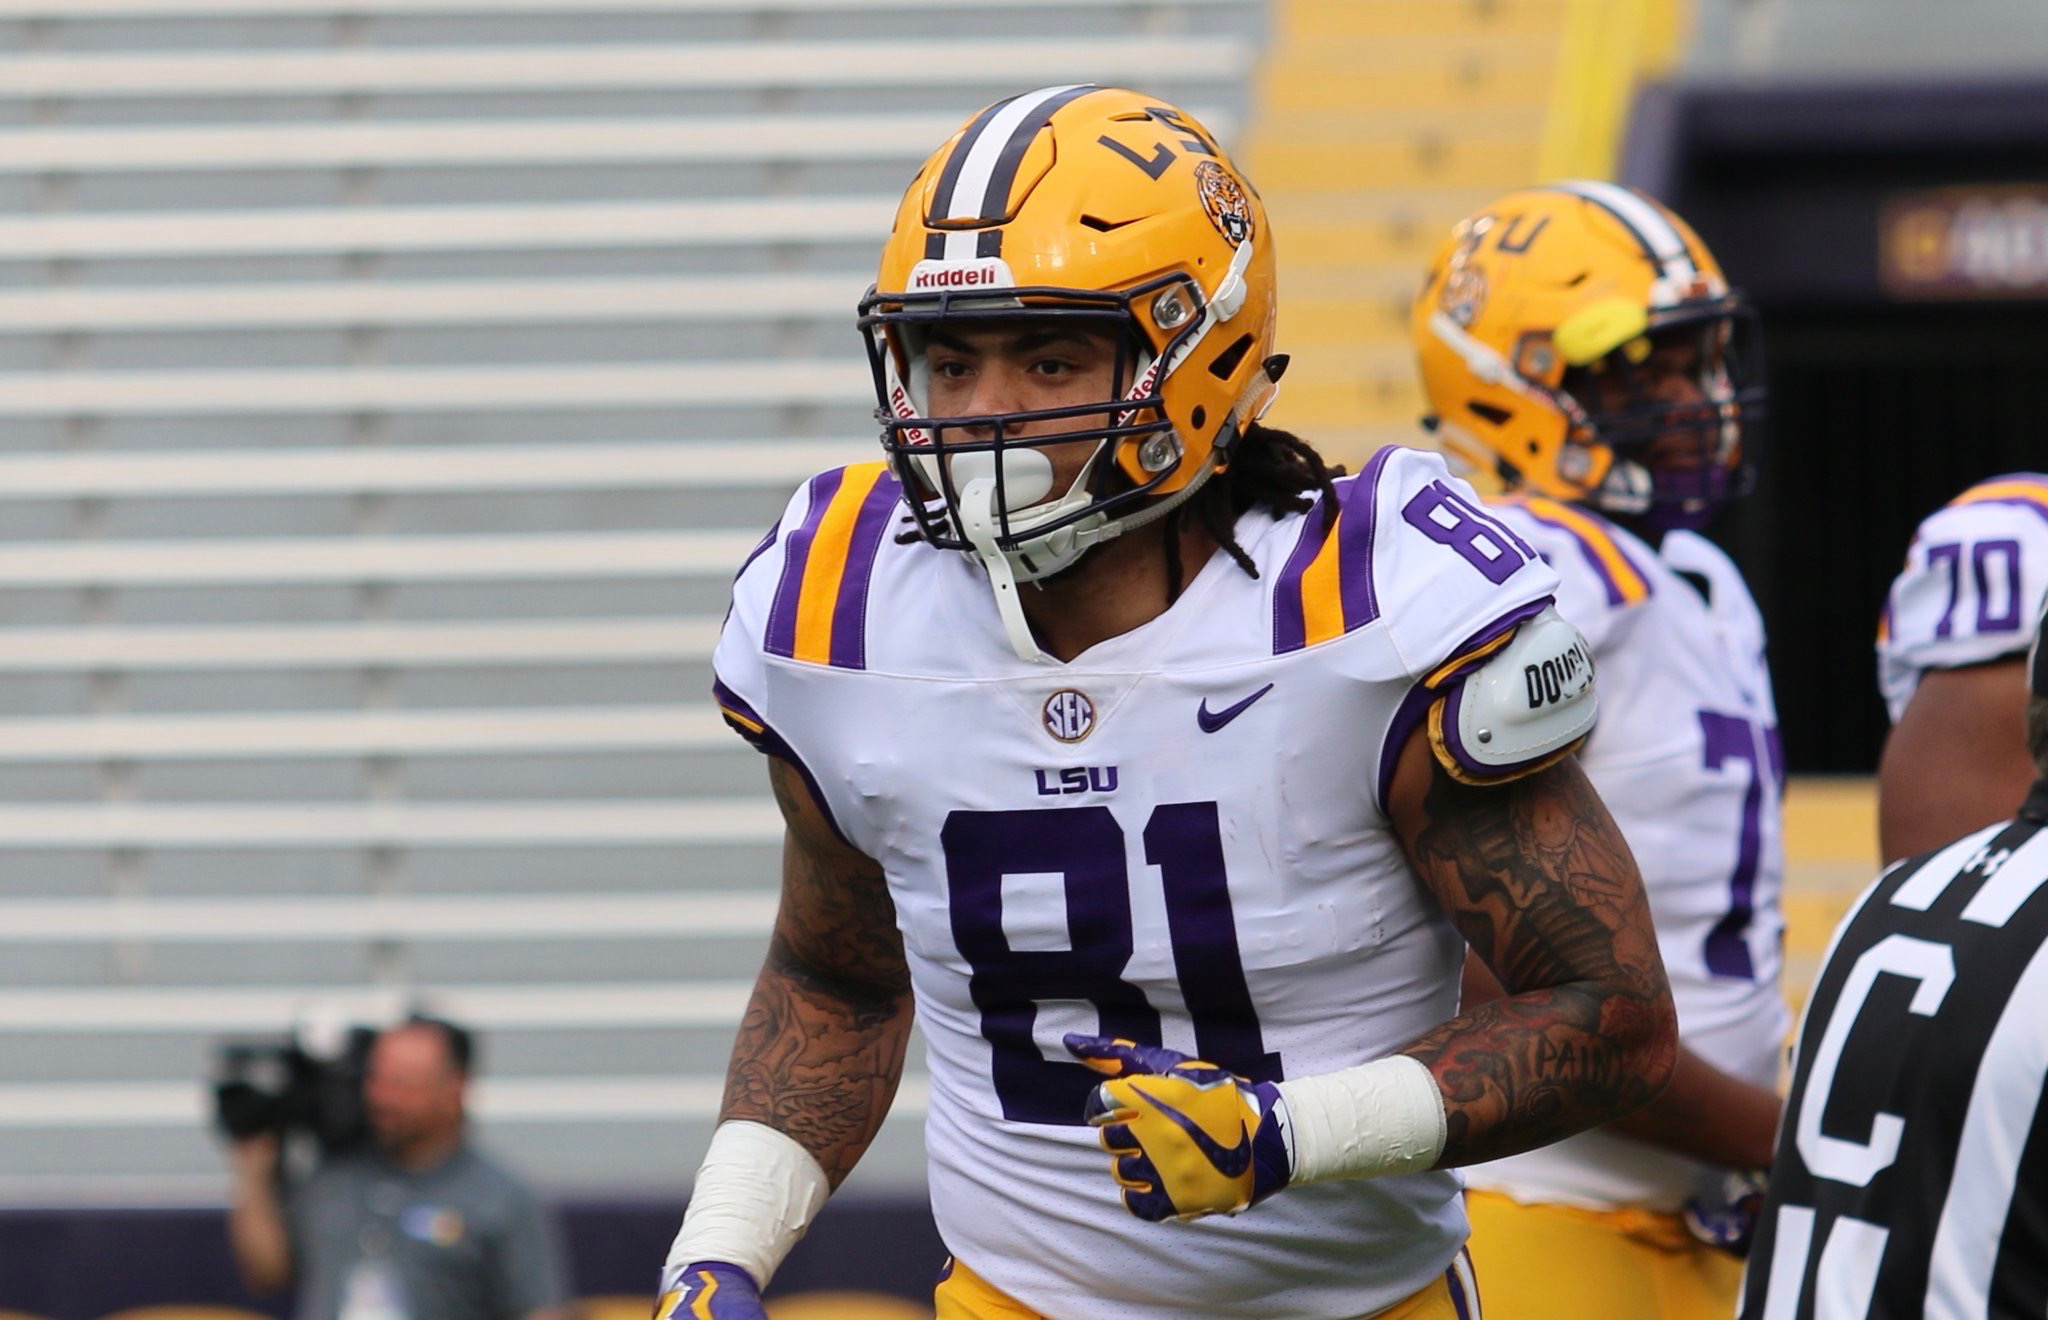 LSU TE Thaddeus Moss to make debut Saturday